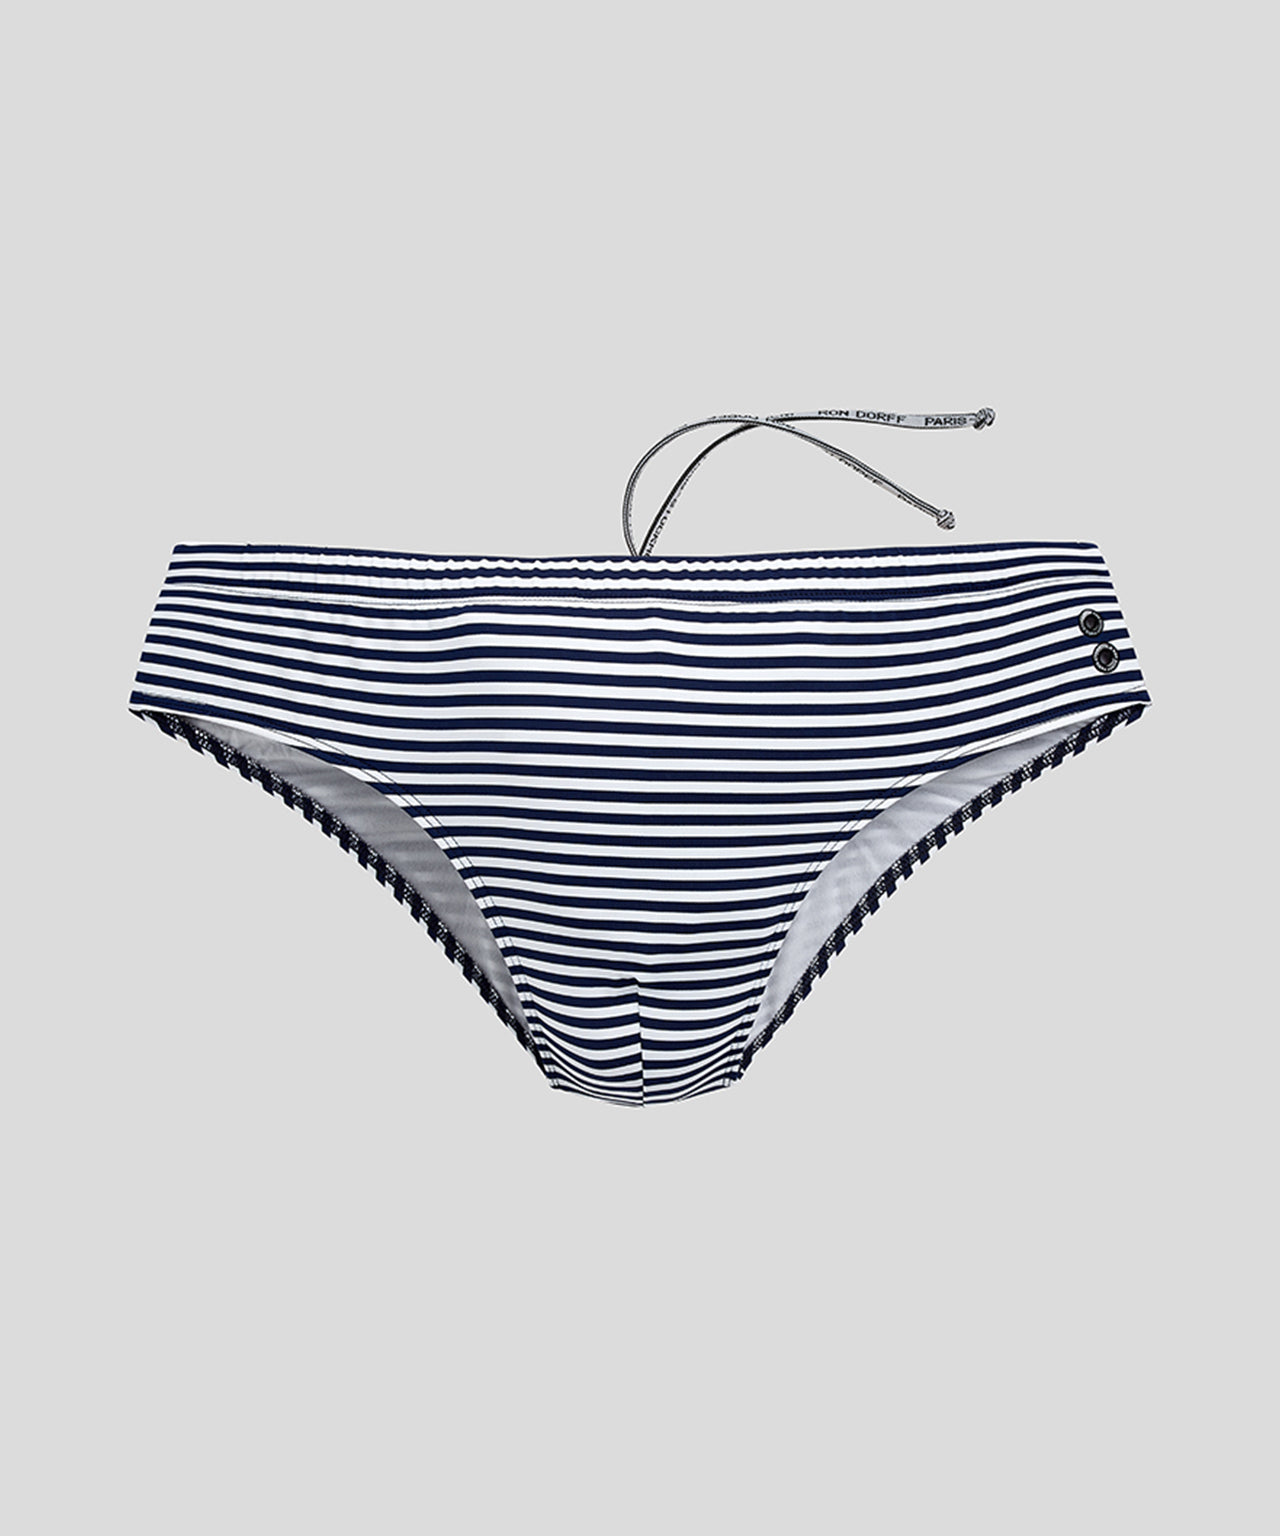 Swim Trunks Horizontal Thin Stripes - navy/white